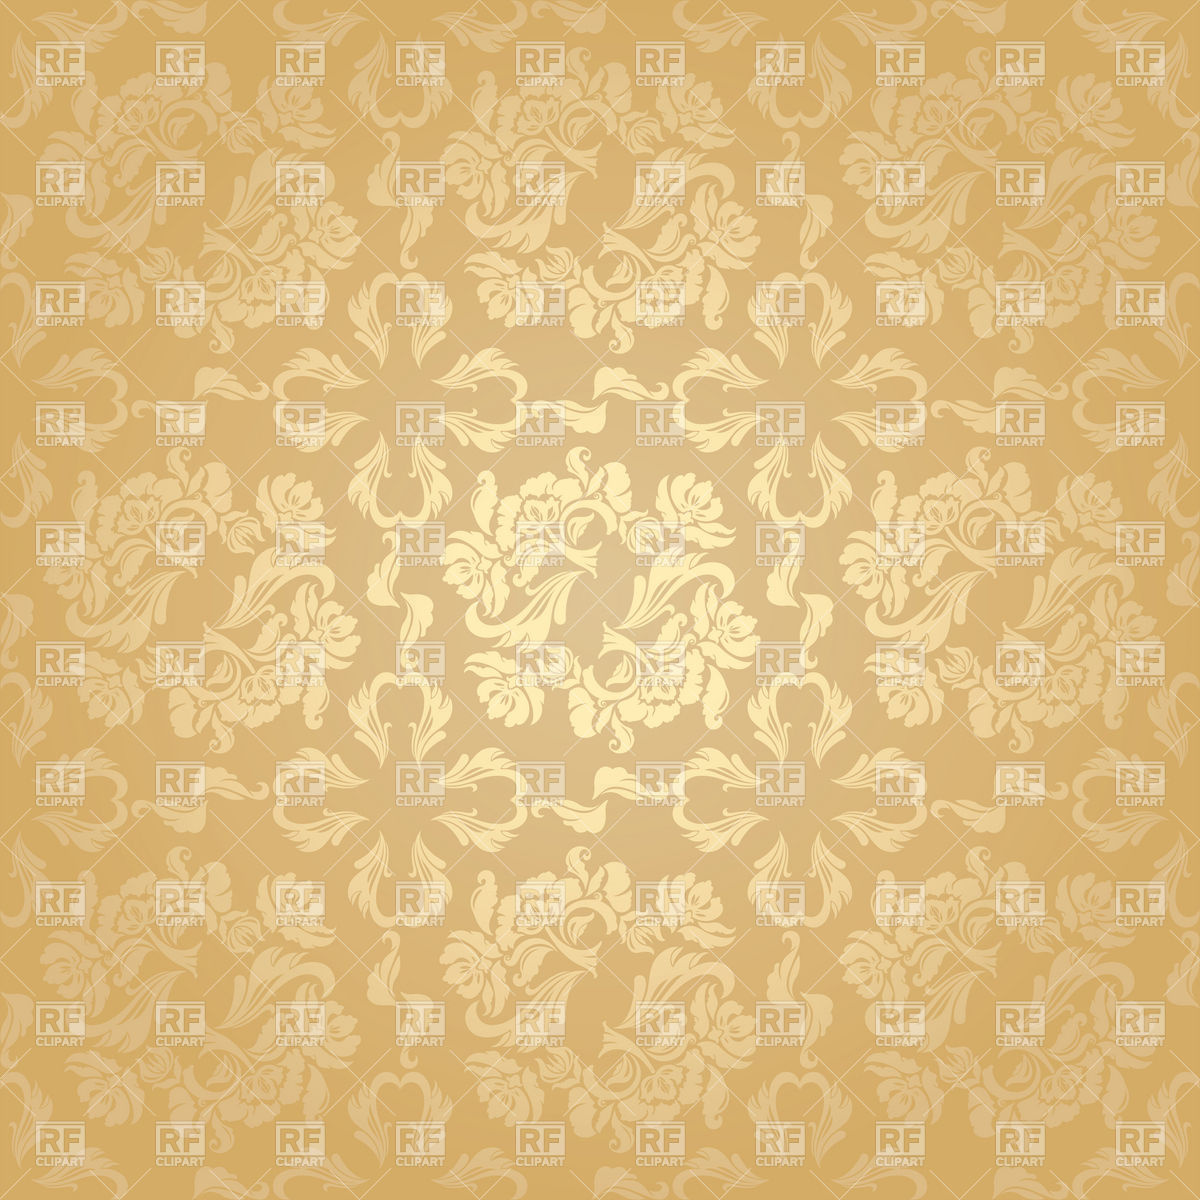 Free download floral victorian wallpaper download royalty.